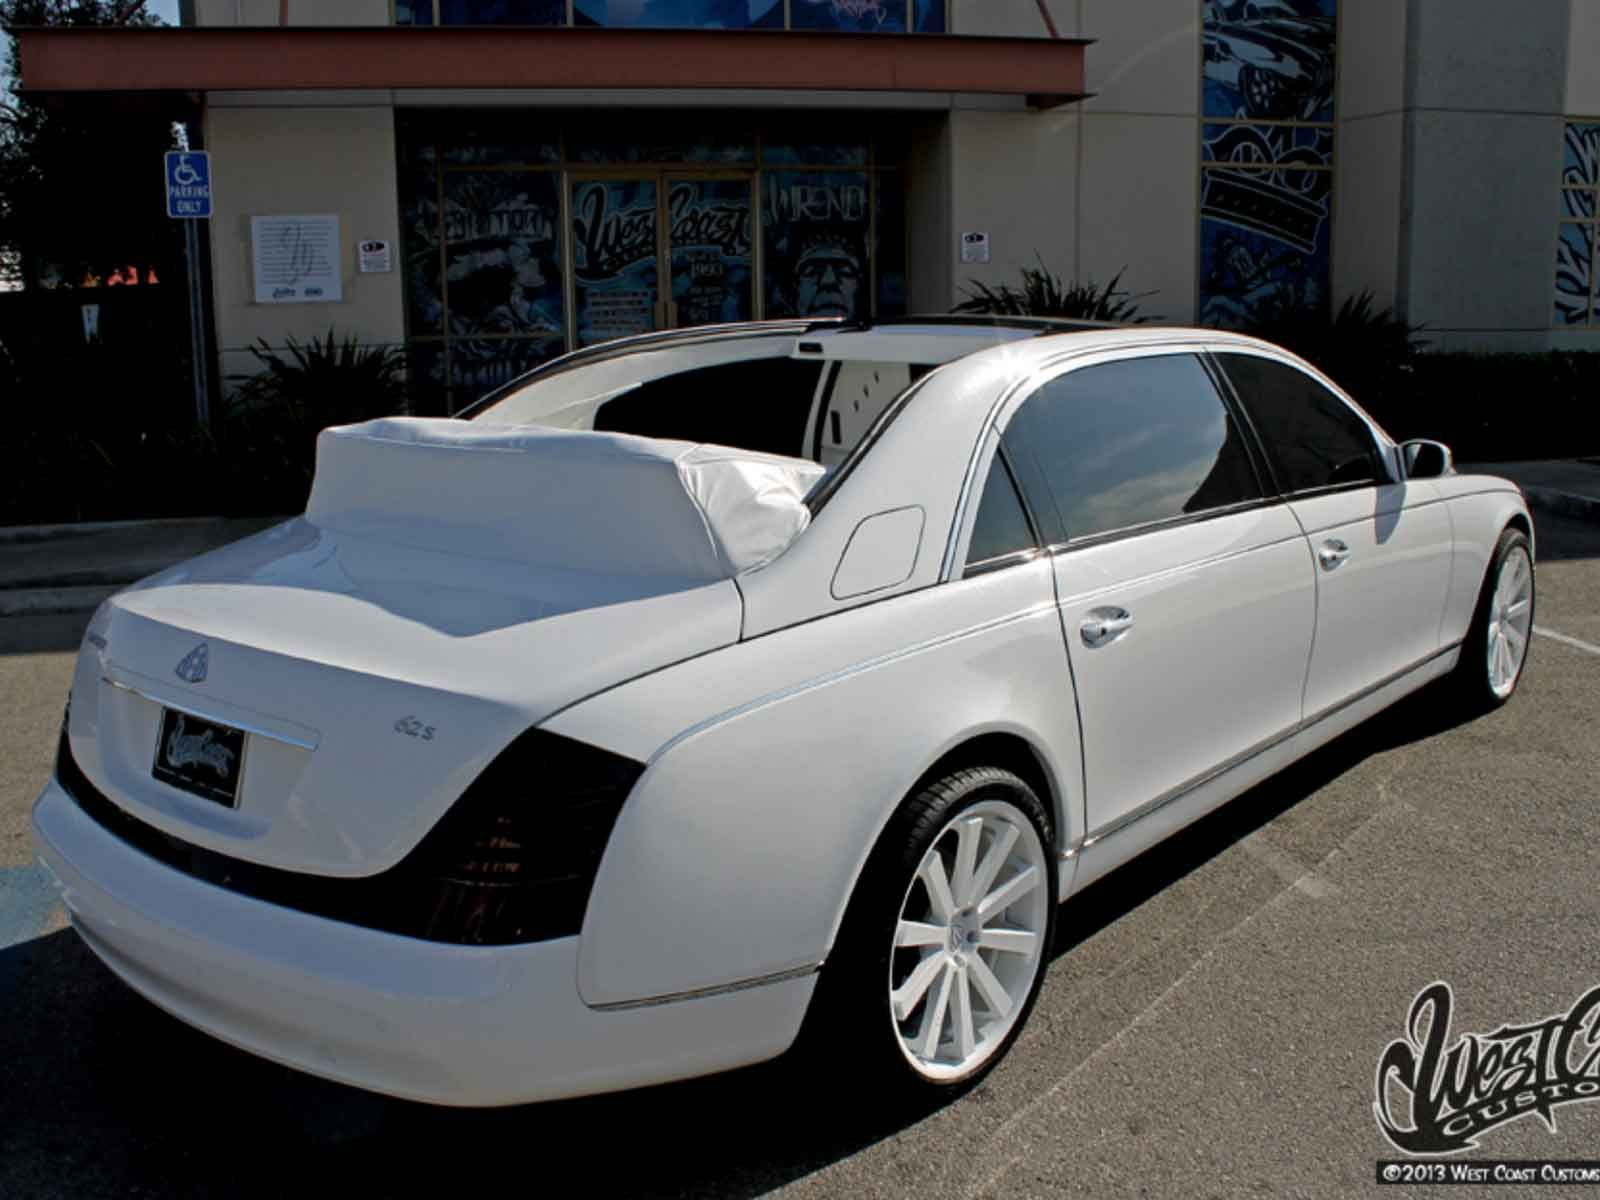 West Coast Customs Cars For Sale >> Tyga S Custom Convertible Maybach Up For Sale To The Highest